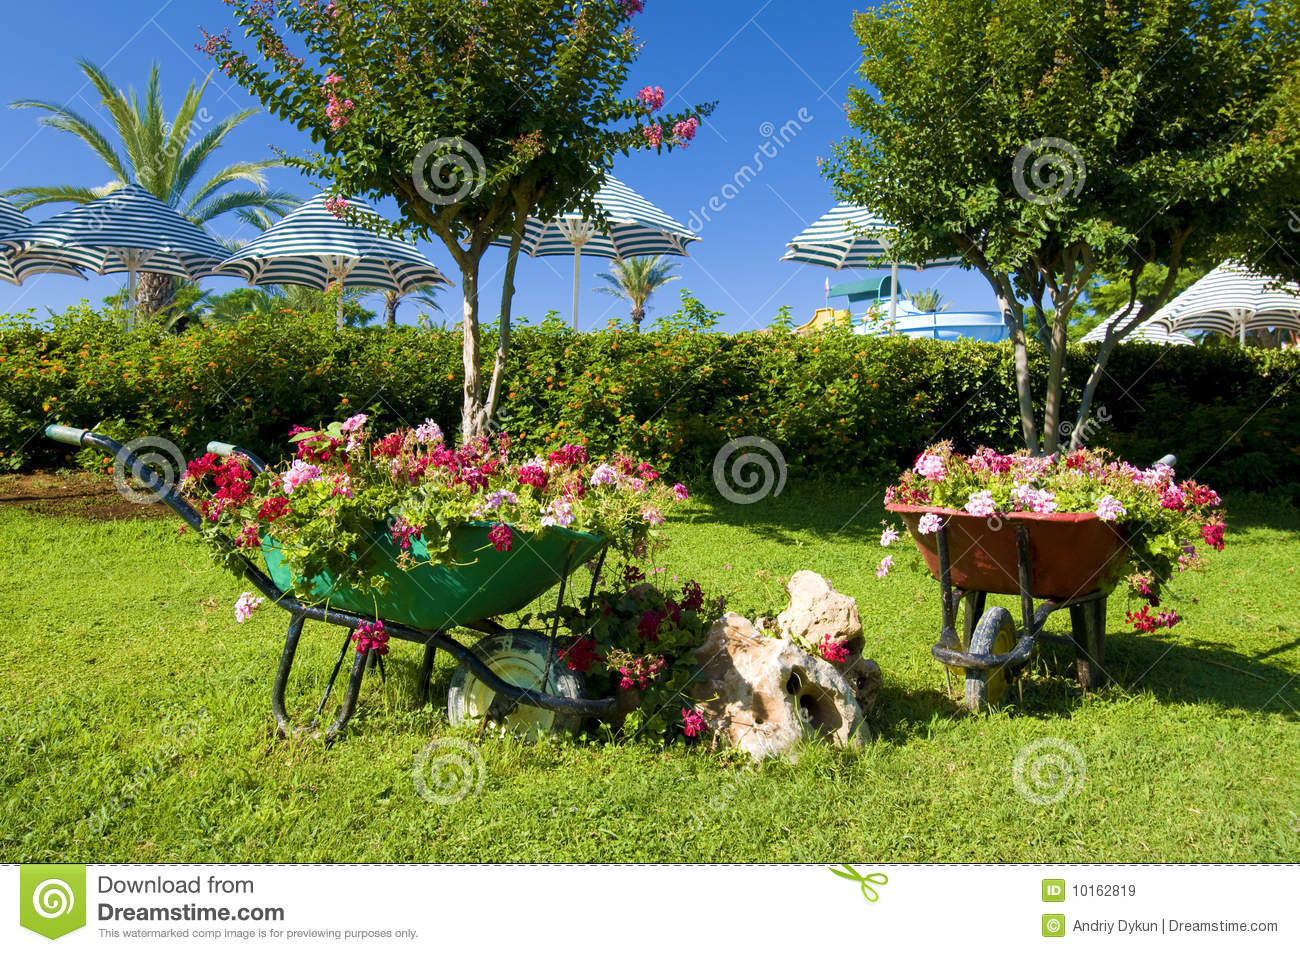 transporte en charrette le jardin de fleur image stock image du nature jardinage 10162819. Black Bedroom Furniture Sets. Home Design Ideas